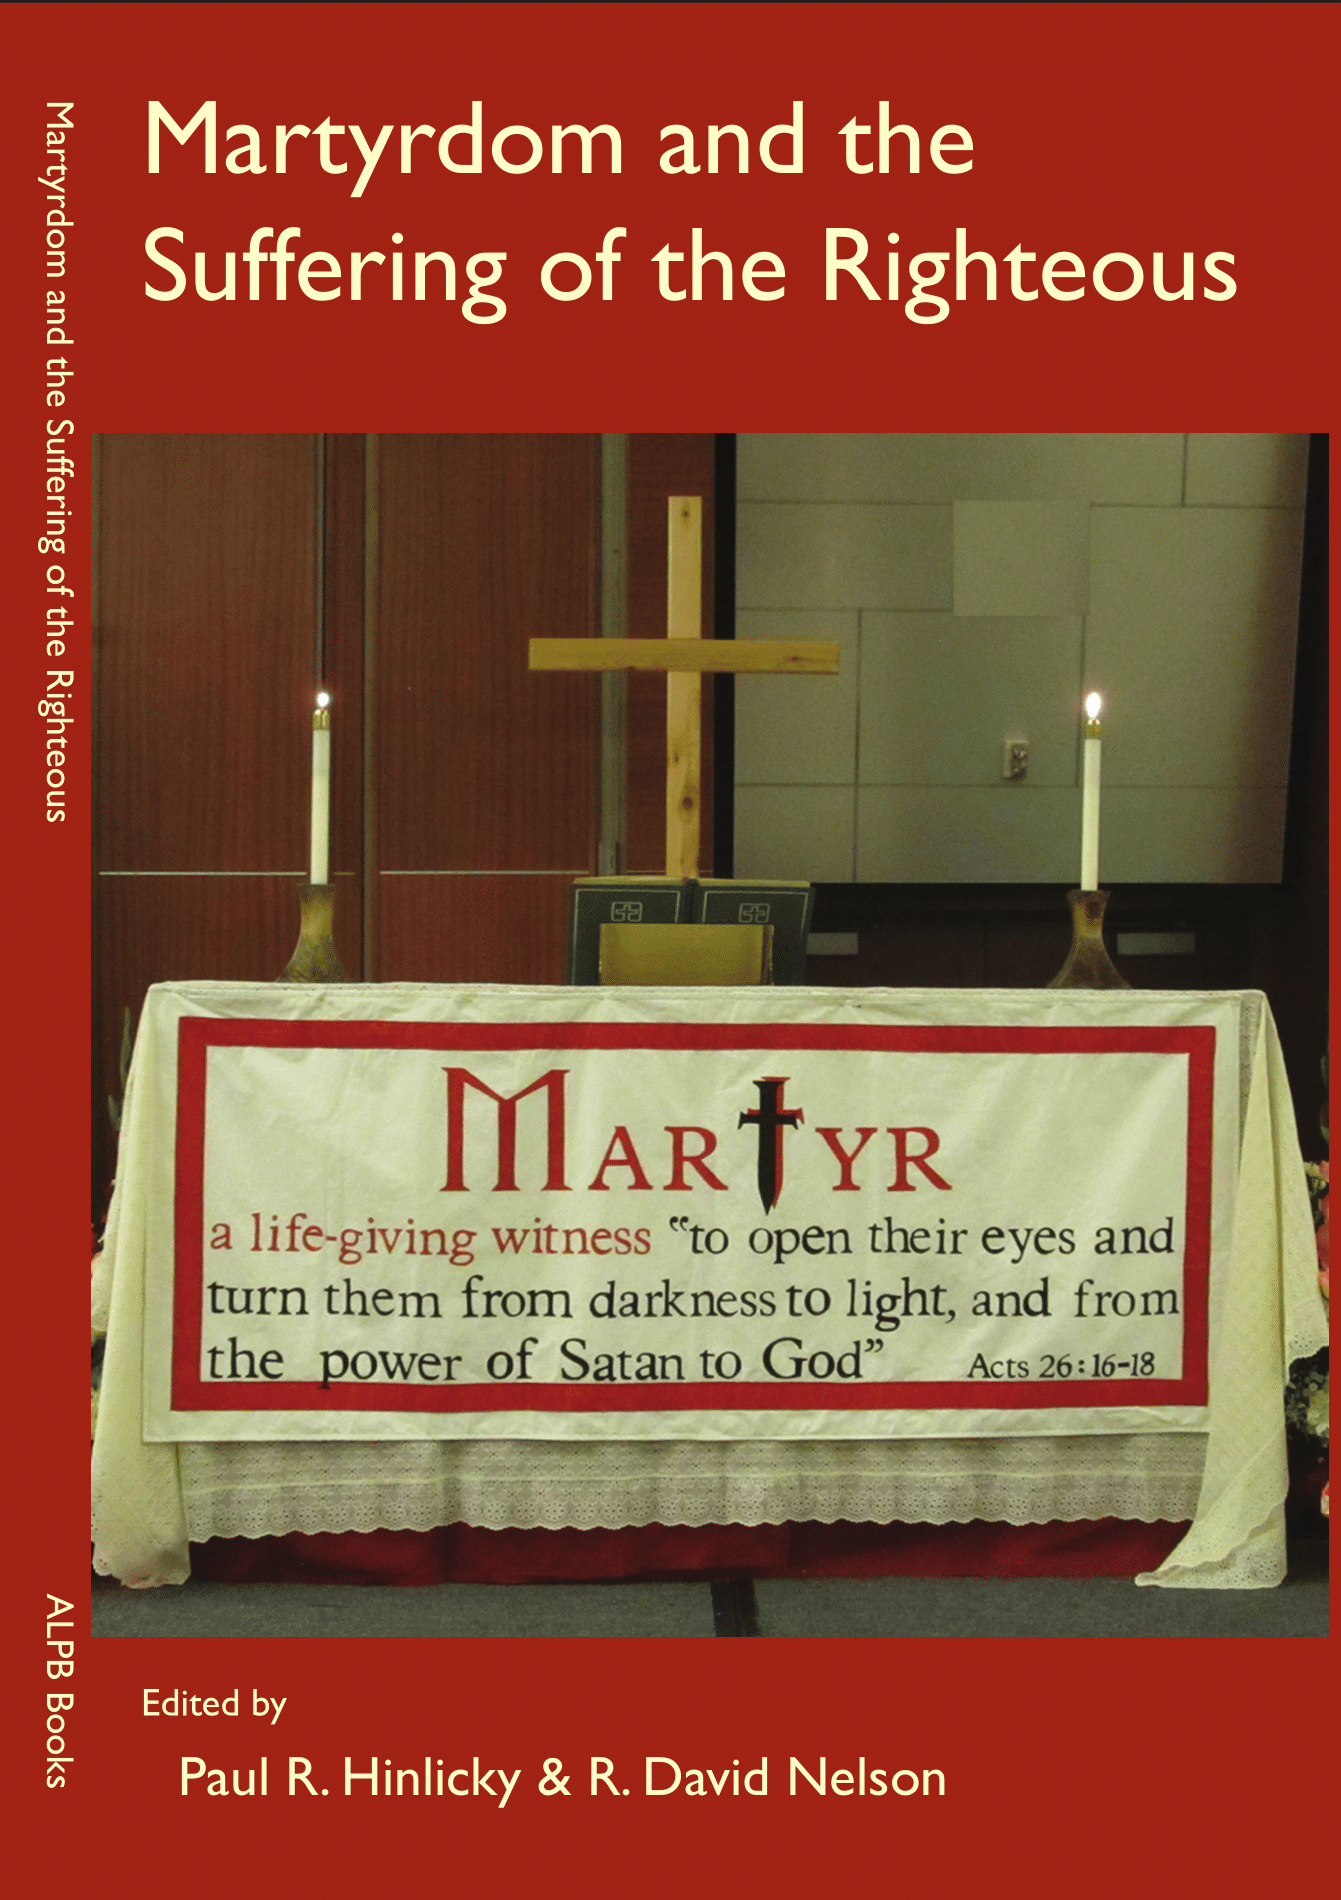 Martyrdom and the Suffering of the Righteous